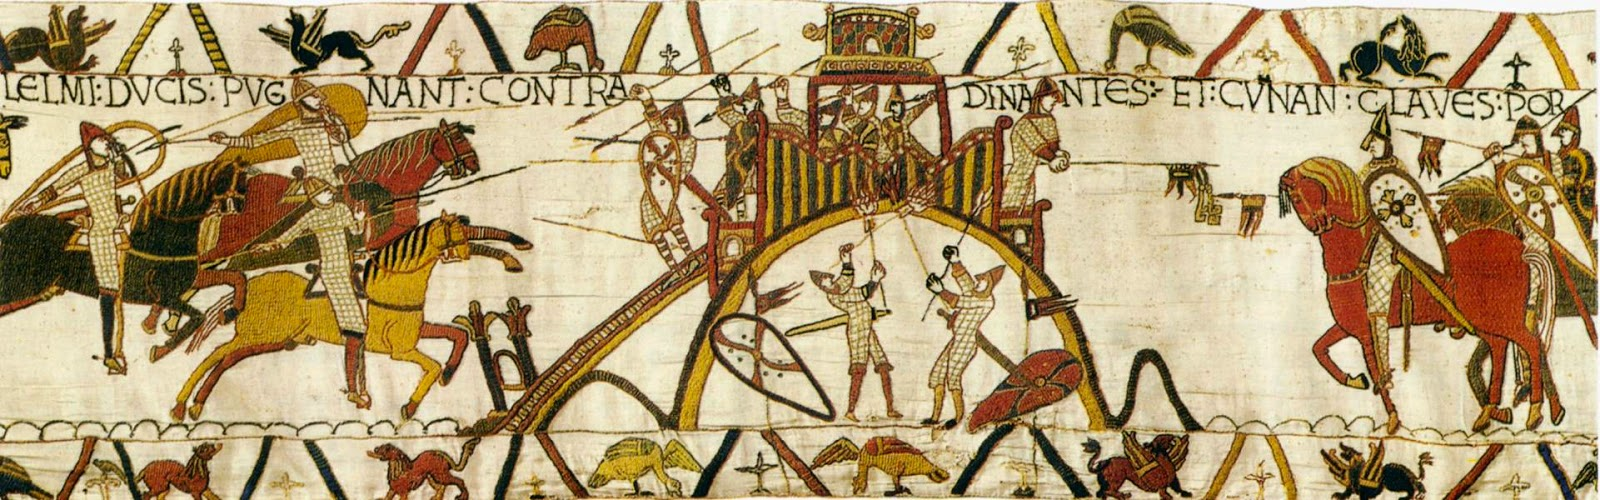 art and women spring 2015 post 2 women s roles from middle ages the bayeux tapestry 1086